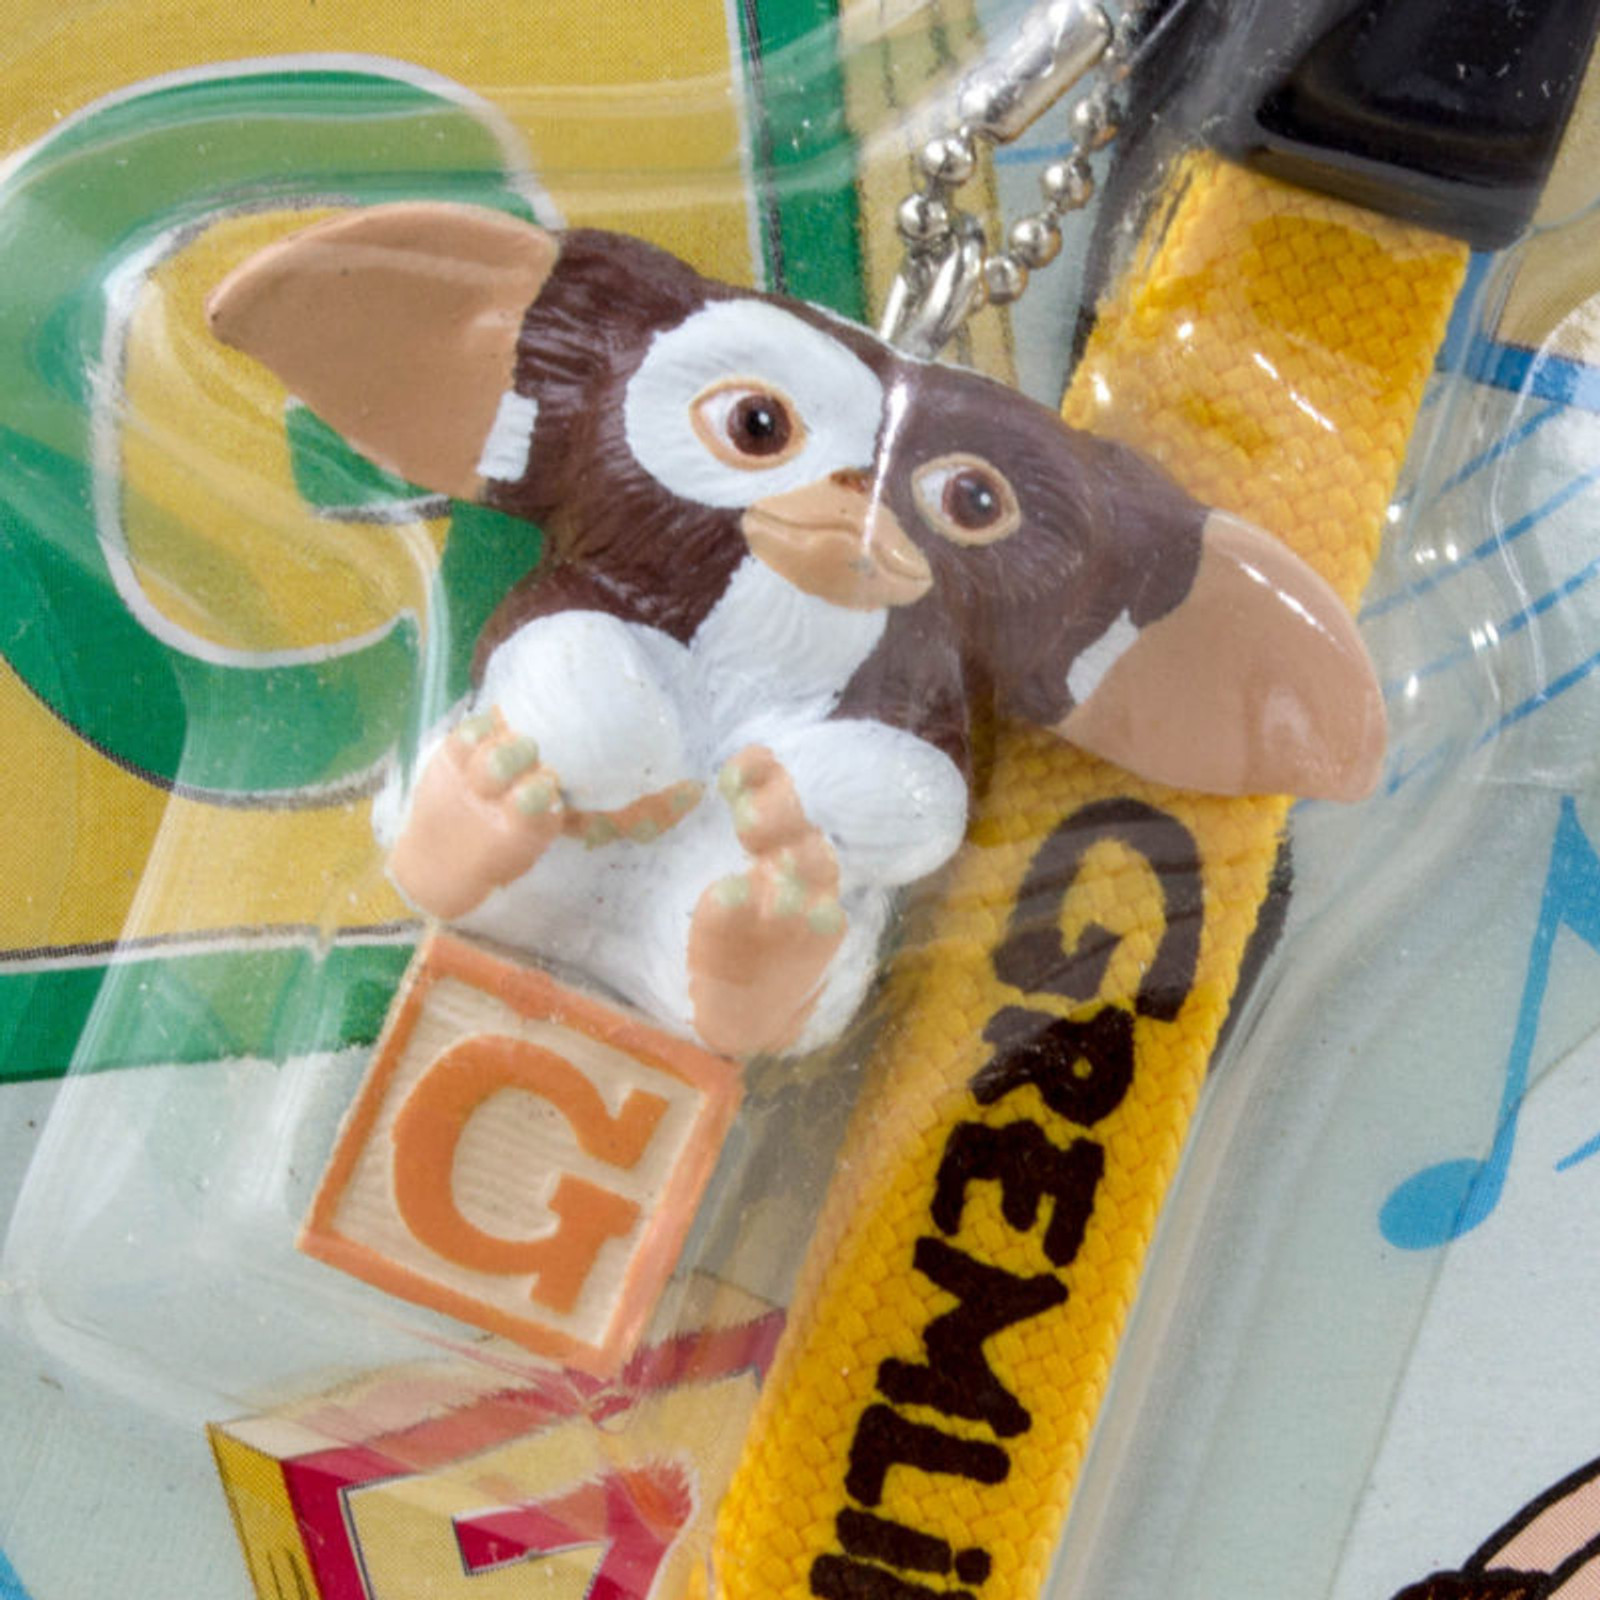 Gremlins 2 The New Batch Gizmo on Cube Figure Mobile Strap Jun Planning JAPAN